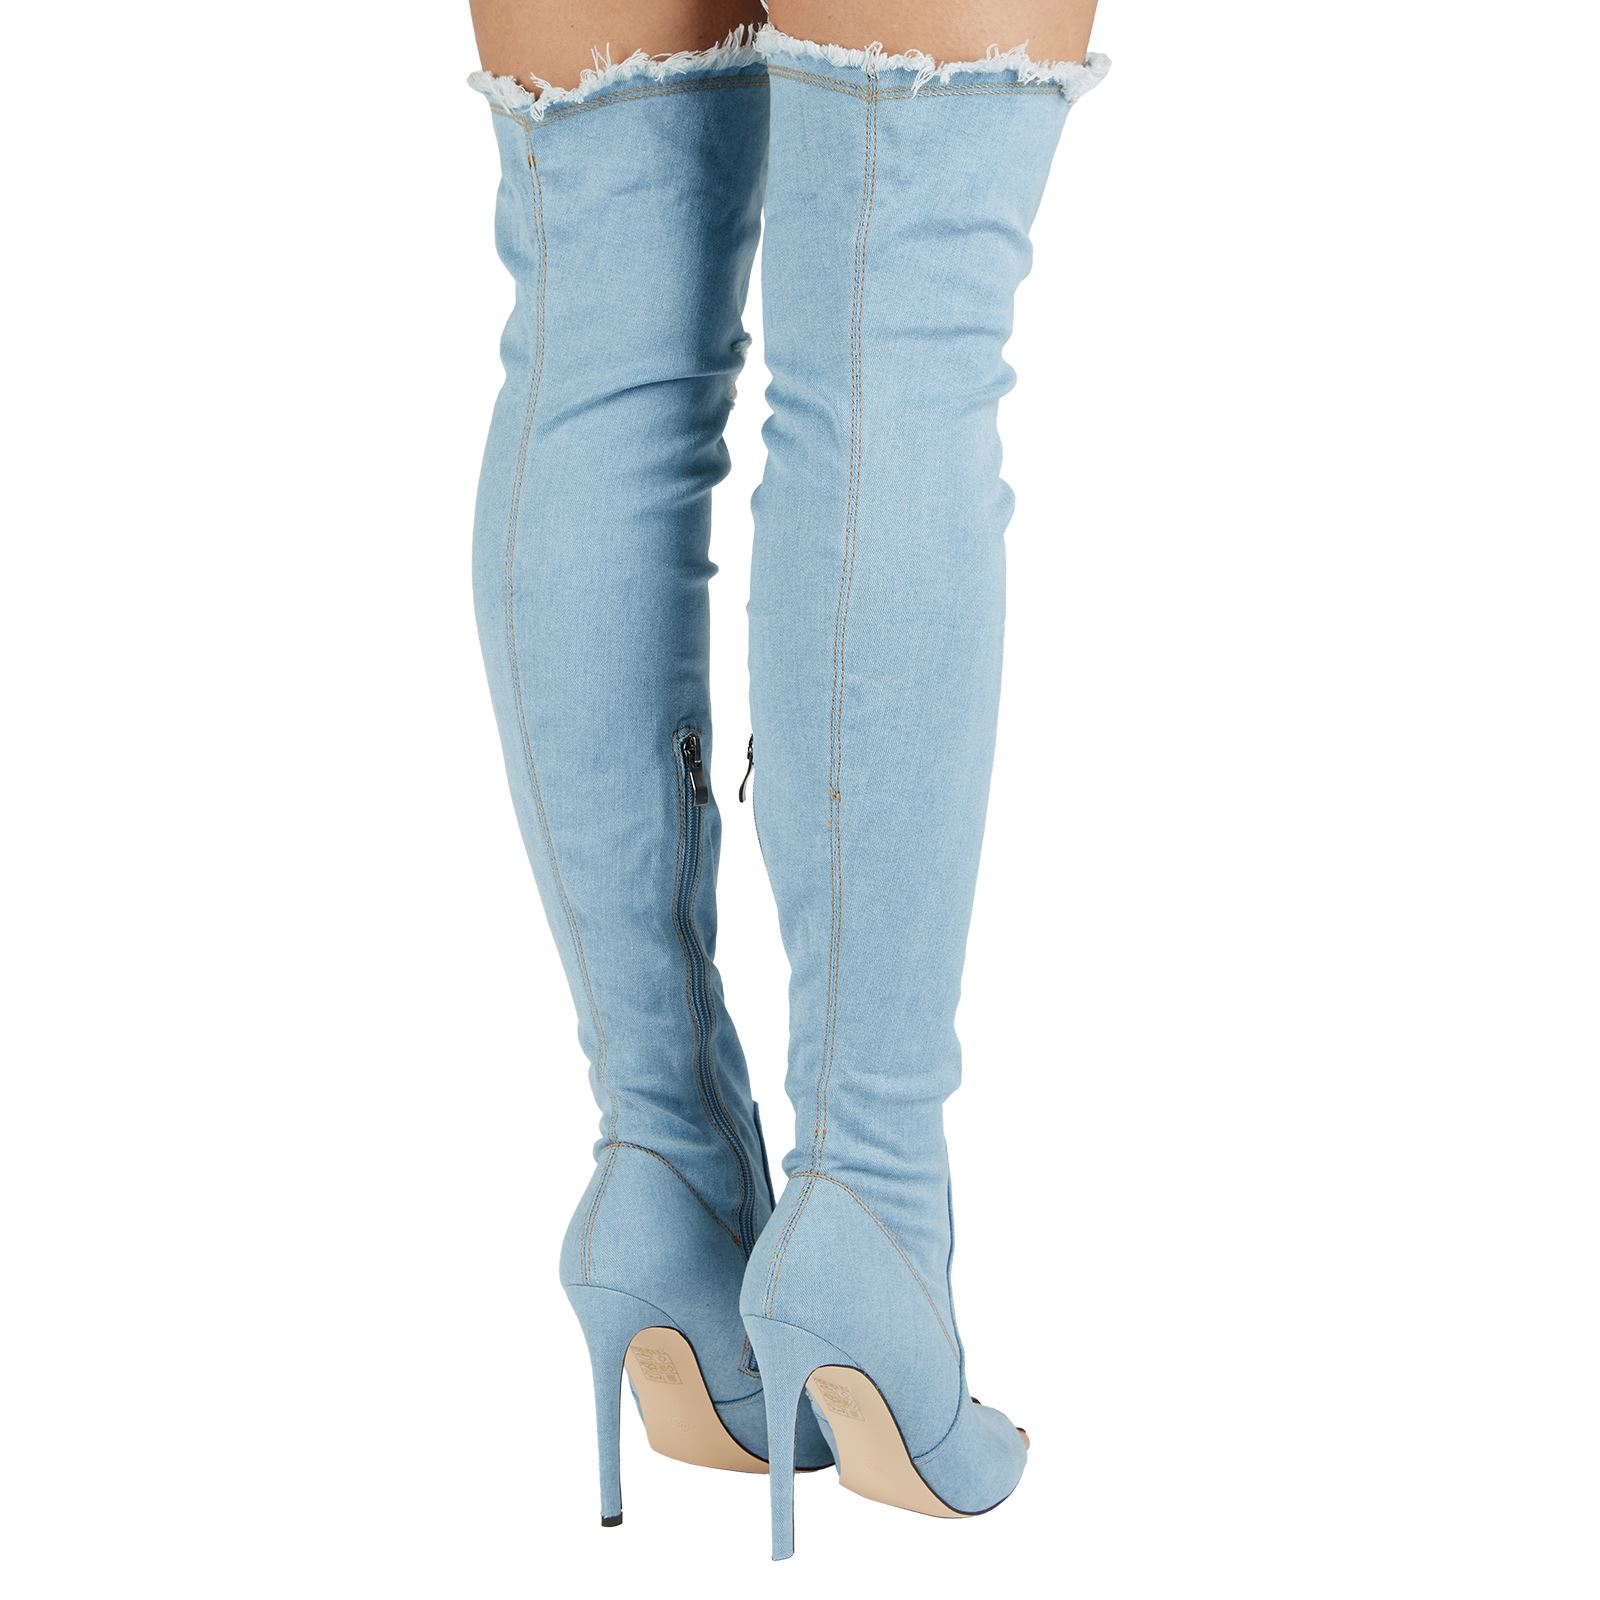 WOMENS OVER KNEE THIGH BOOTS DEMIN STRETCH JEANS STILETTO ...